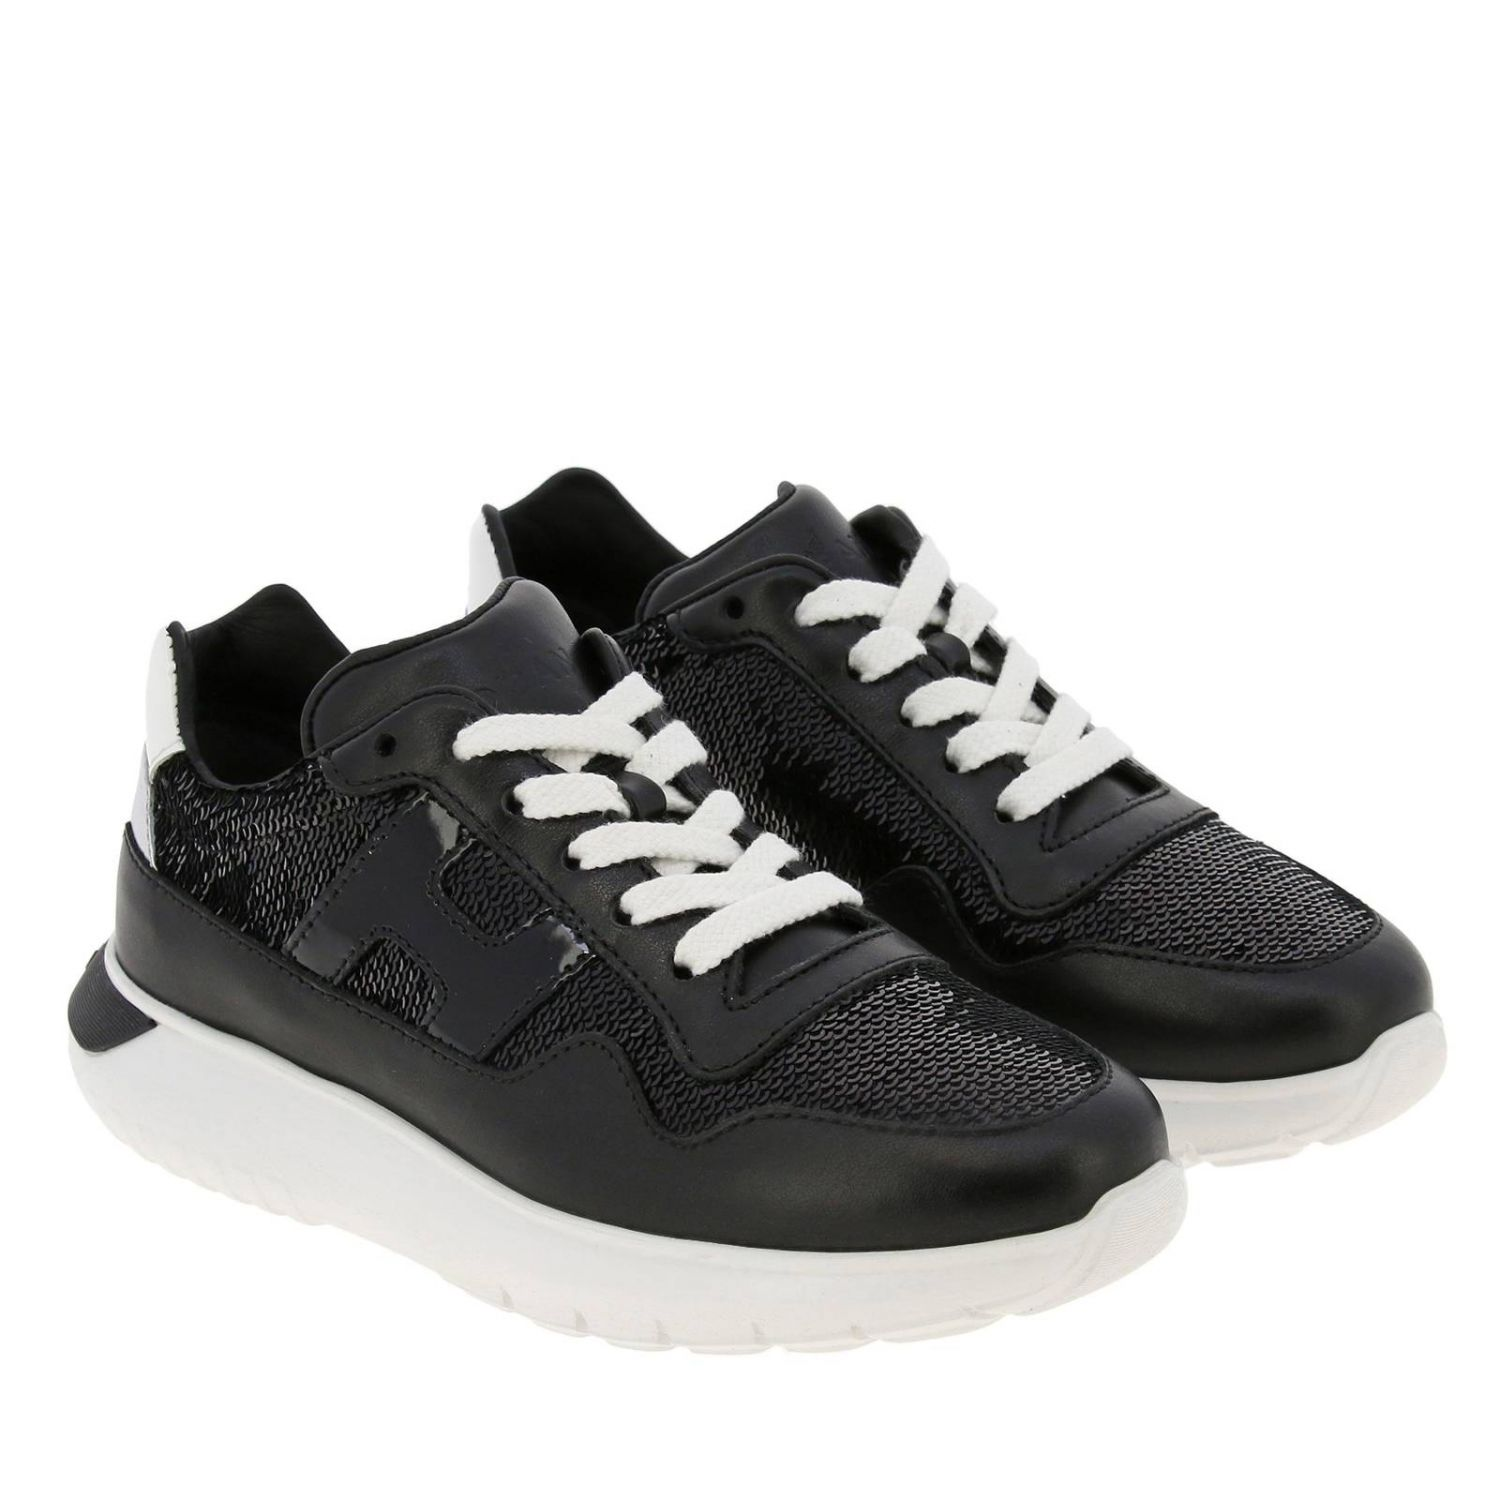 Cube Hogan sneakers in leather and sequins black 2